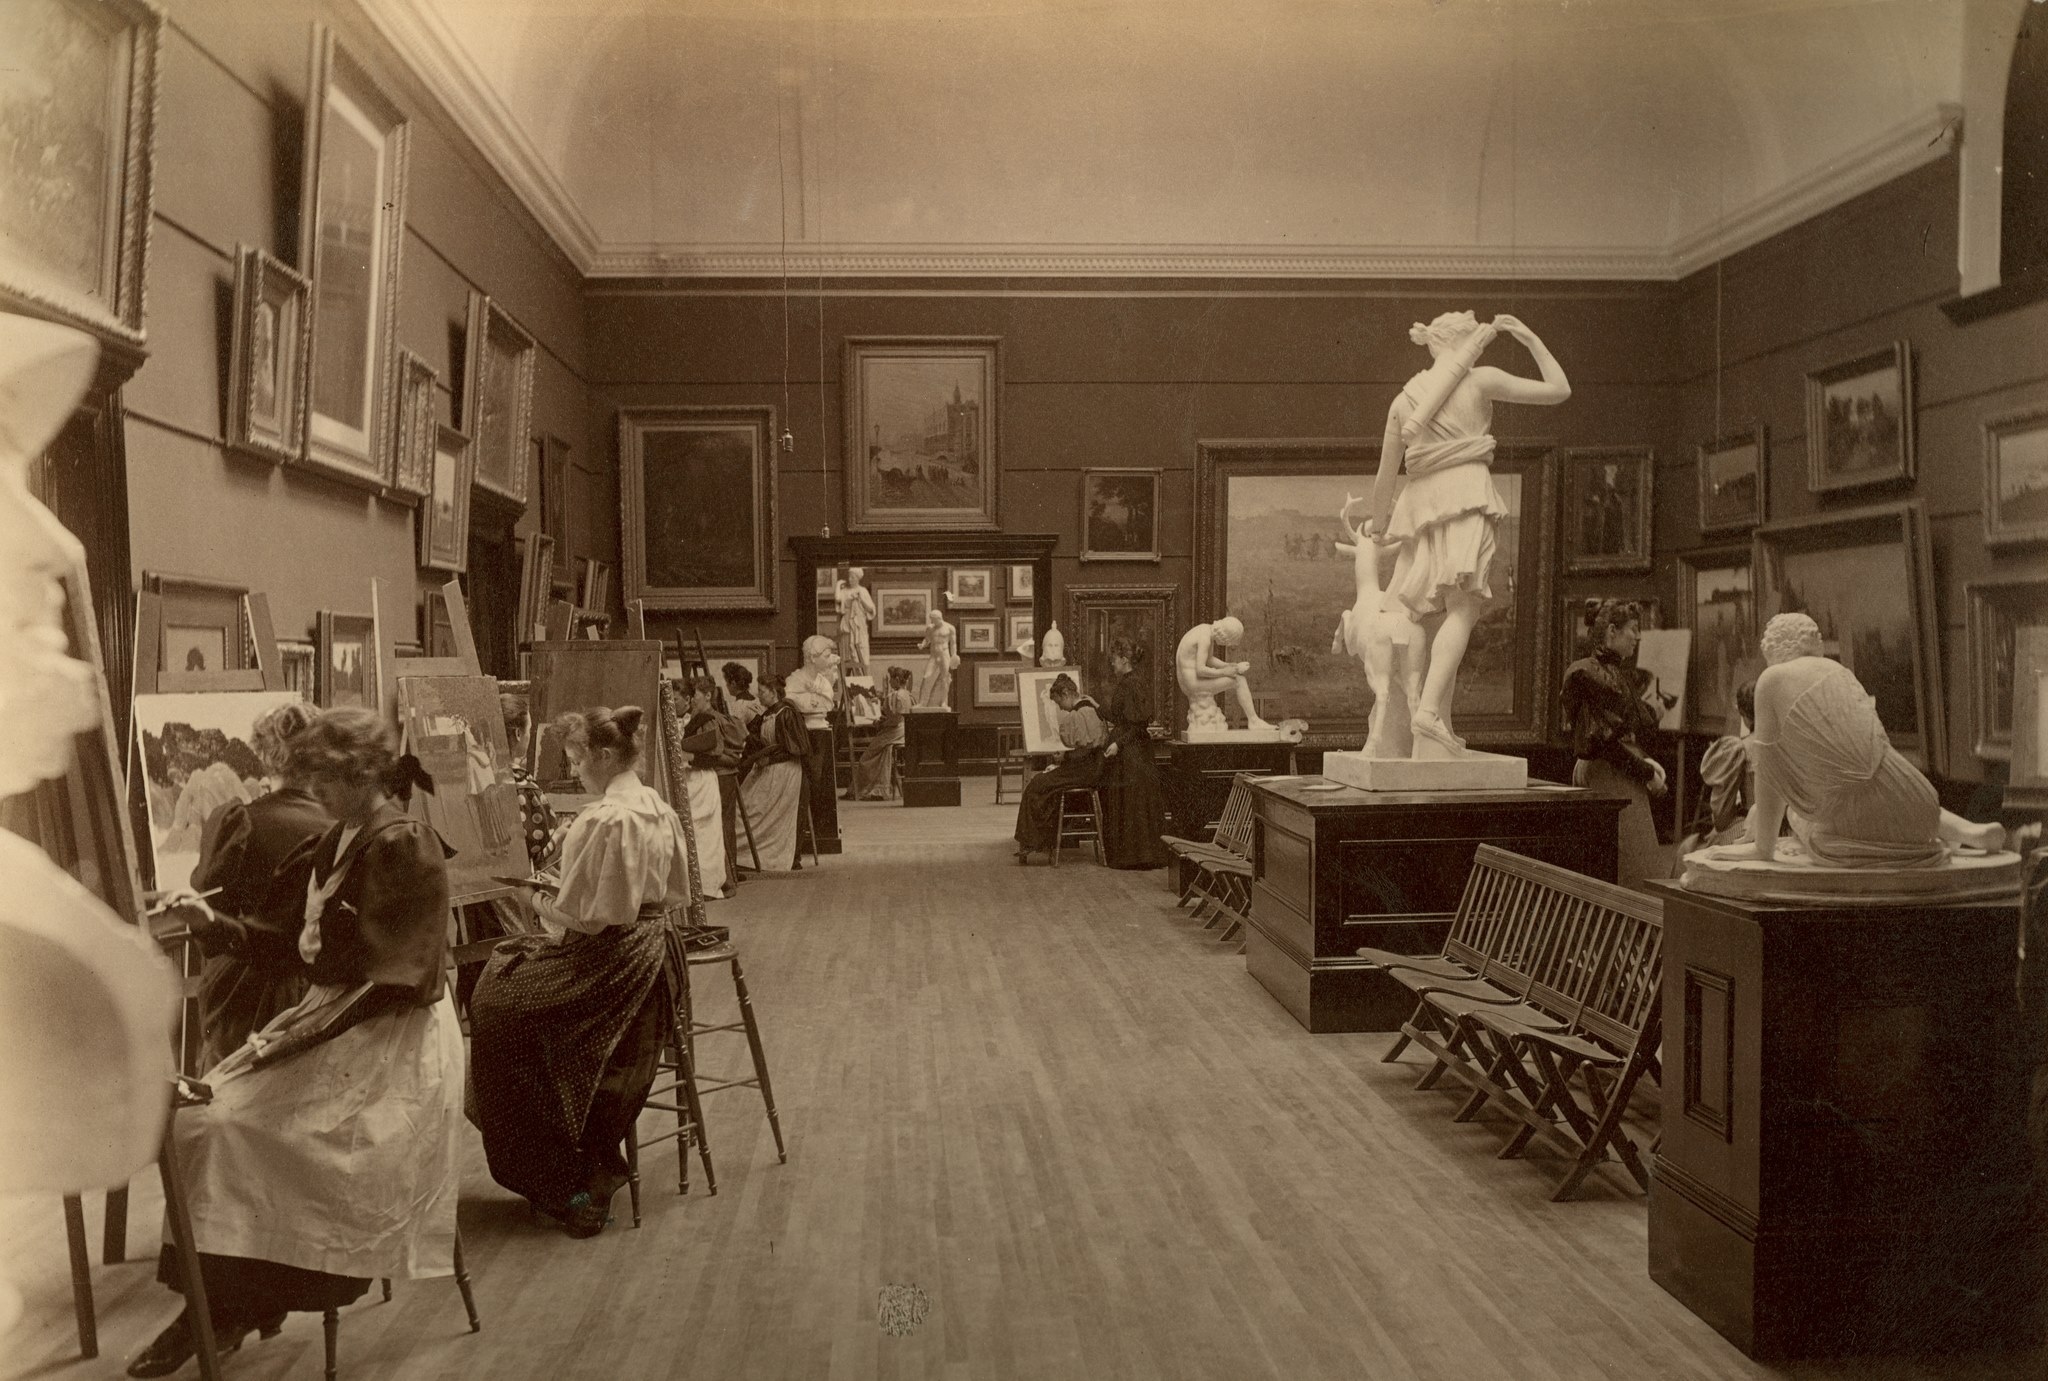 A sepia-toned photograph shows women seated at easels painting copies of the framed paintings on display in a gallery with a high ceiling. In the centre of the room plaster casts of classical Greek statues are displayed on a high plinth.